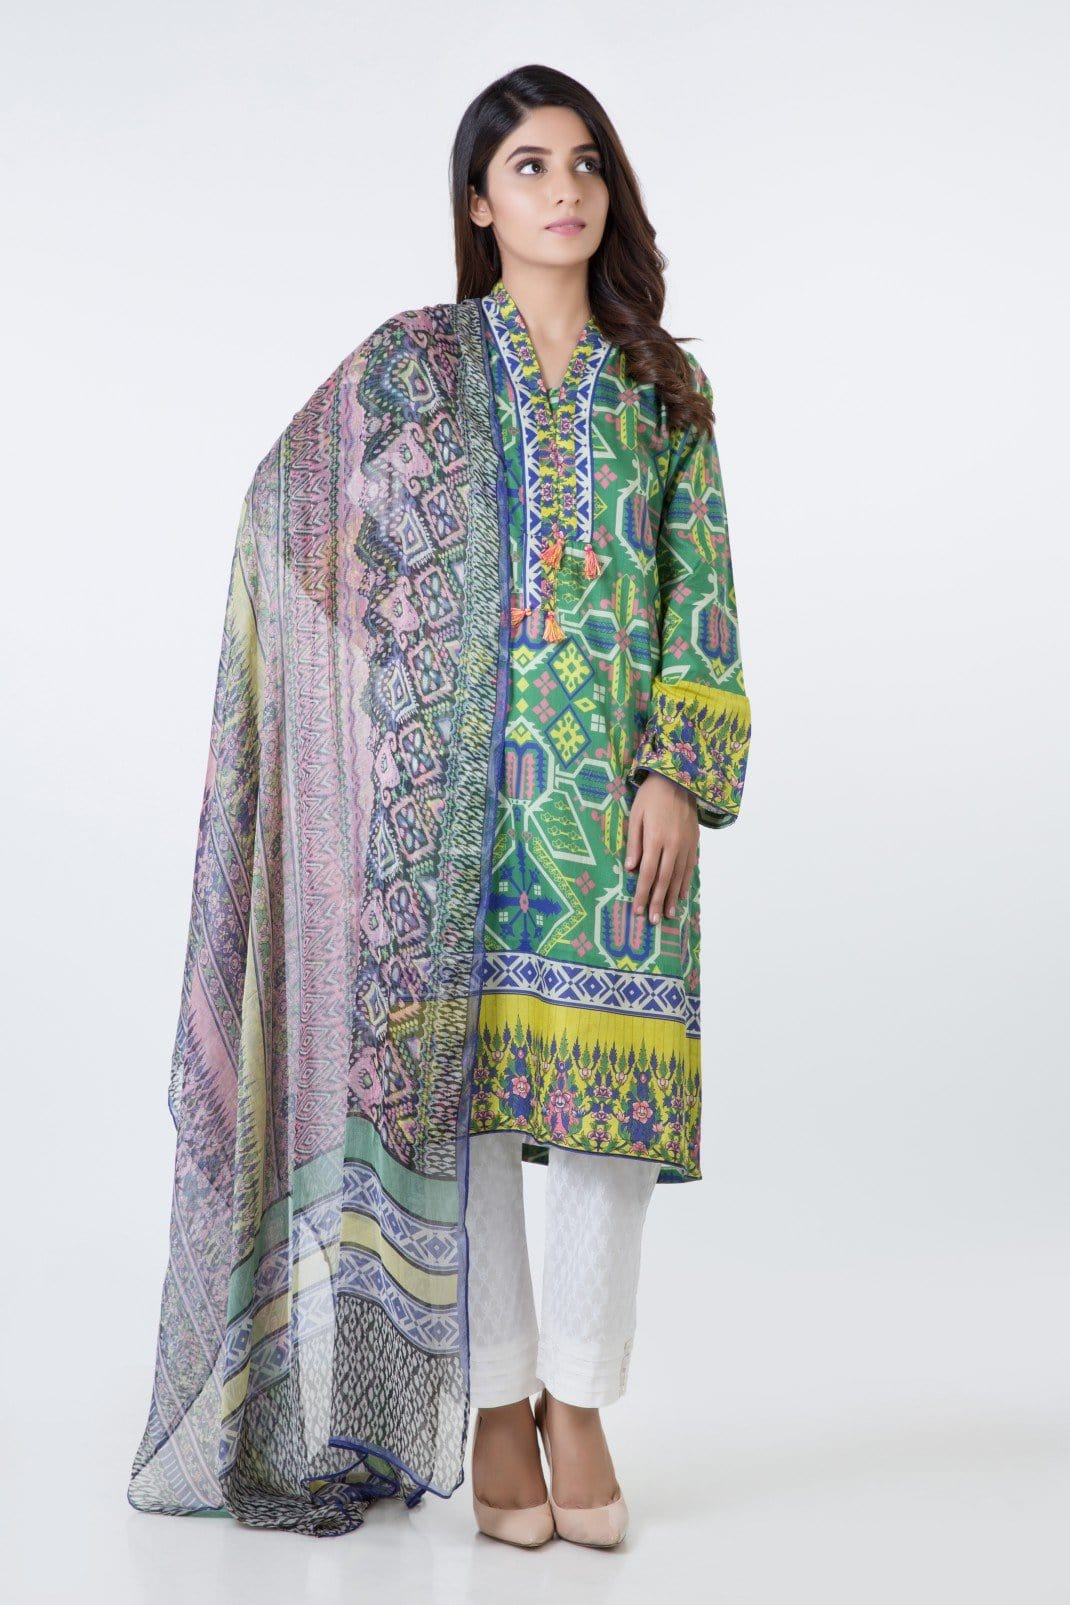 Bonanza Satrangi   Green Lawn Suit - Stitched